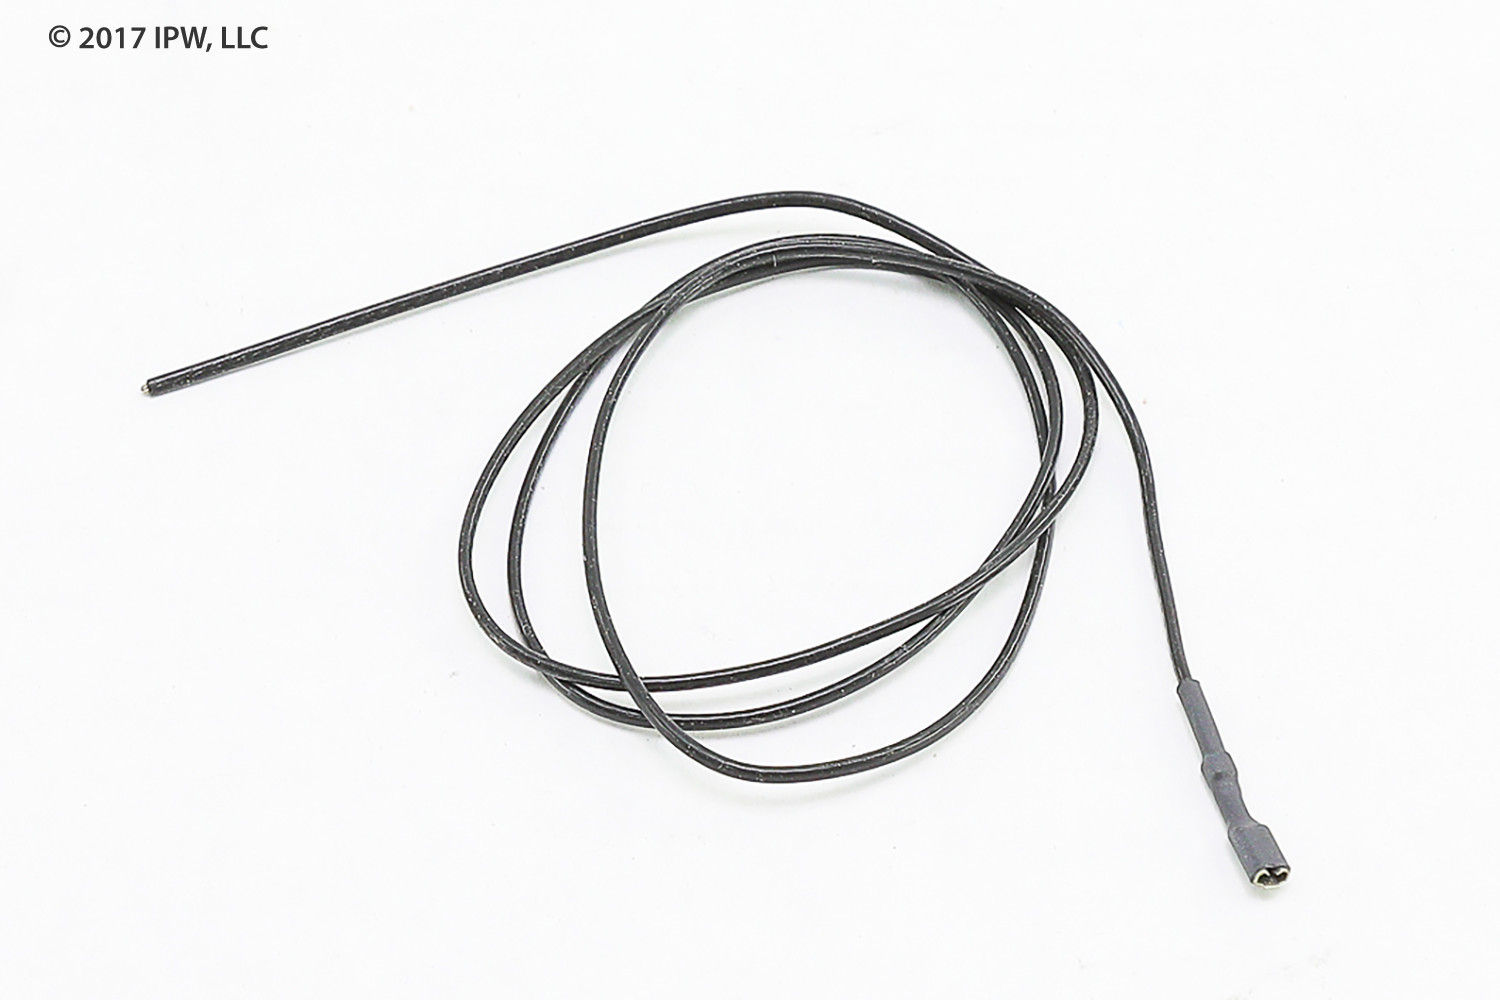 Detroit Radiant TP-222A FLAME ROD SENSOR WIRE